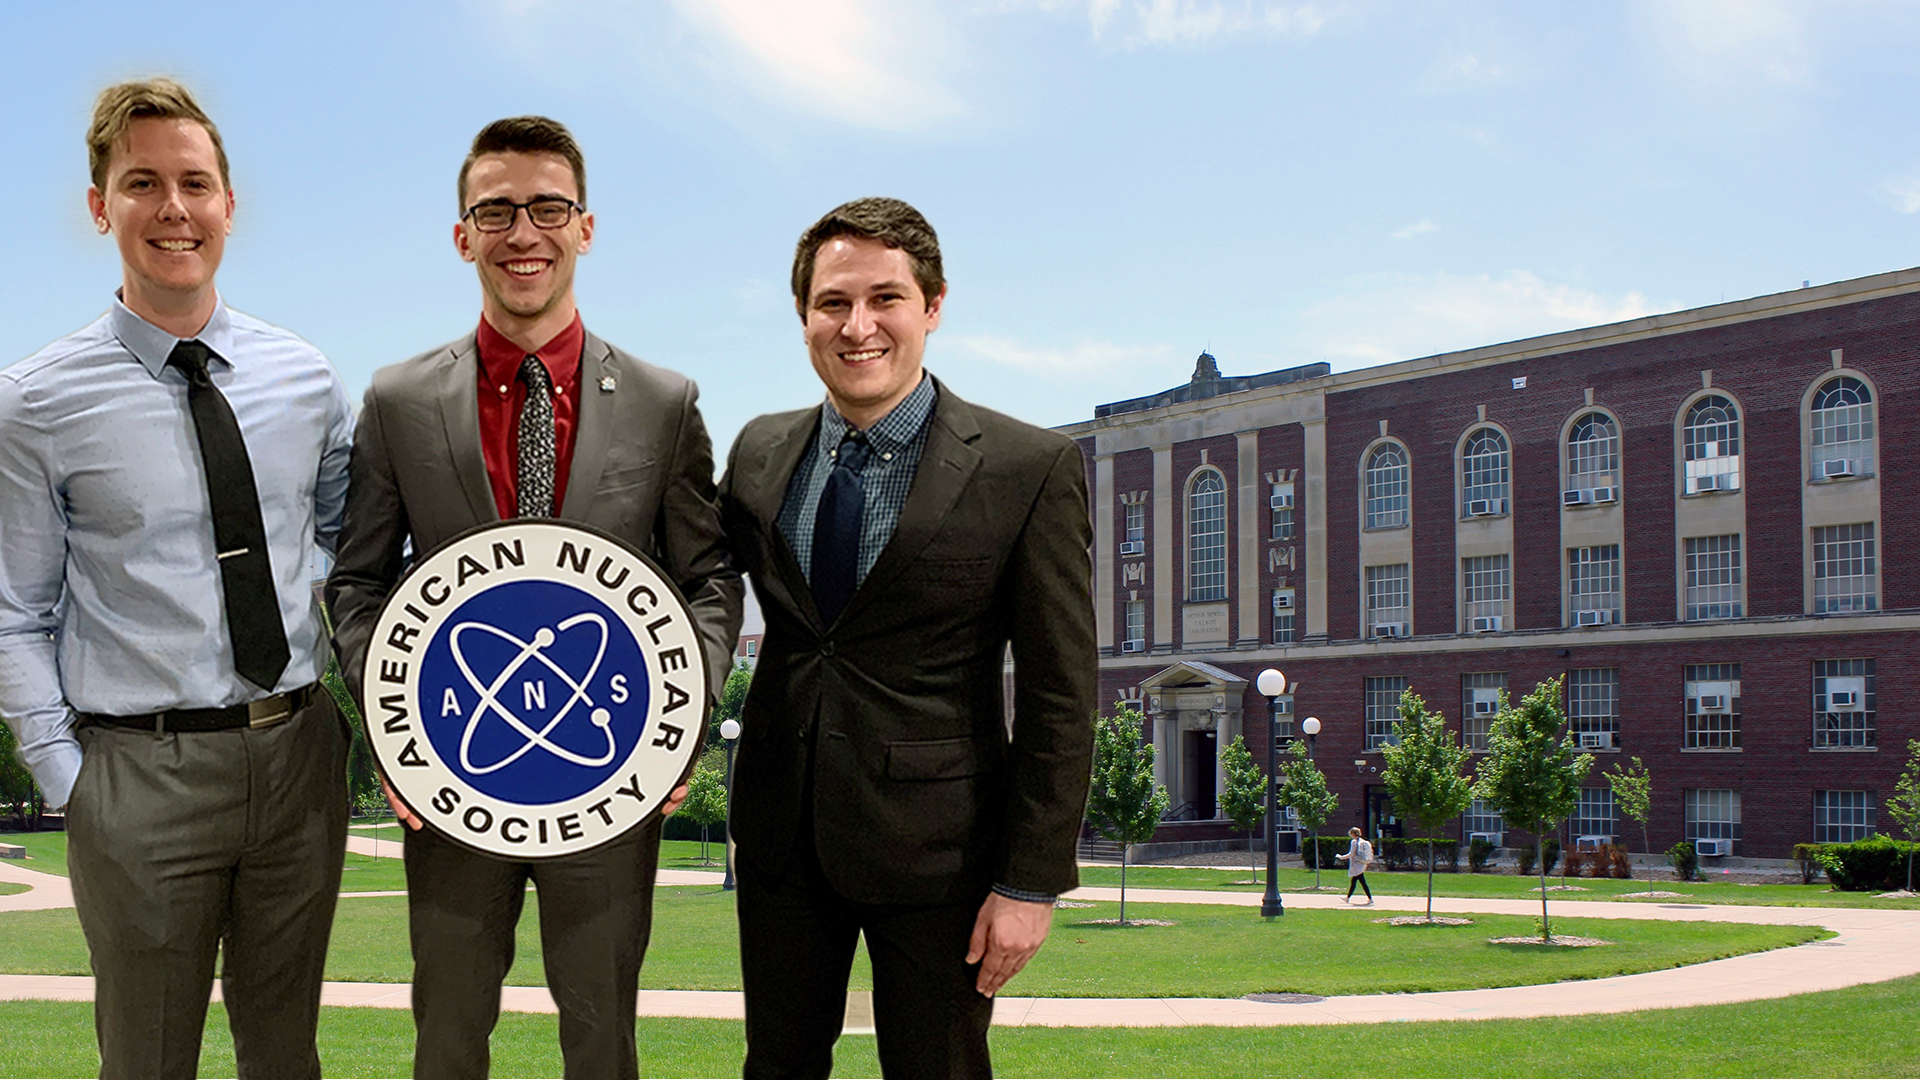 Uiuc Calendar Spring 2022.Illinois Chapter To Host National Ans 2022 Student Conference Nuclear Plasma Radiological Engineering Uiuc